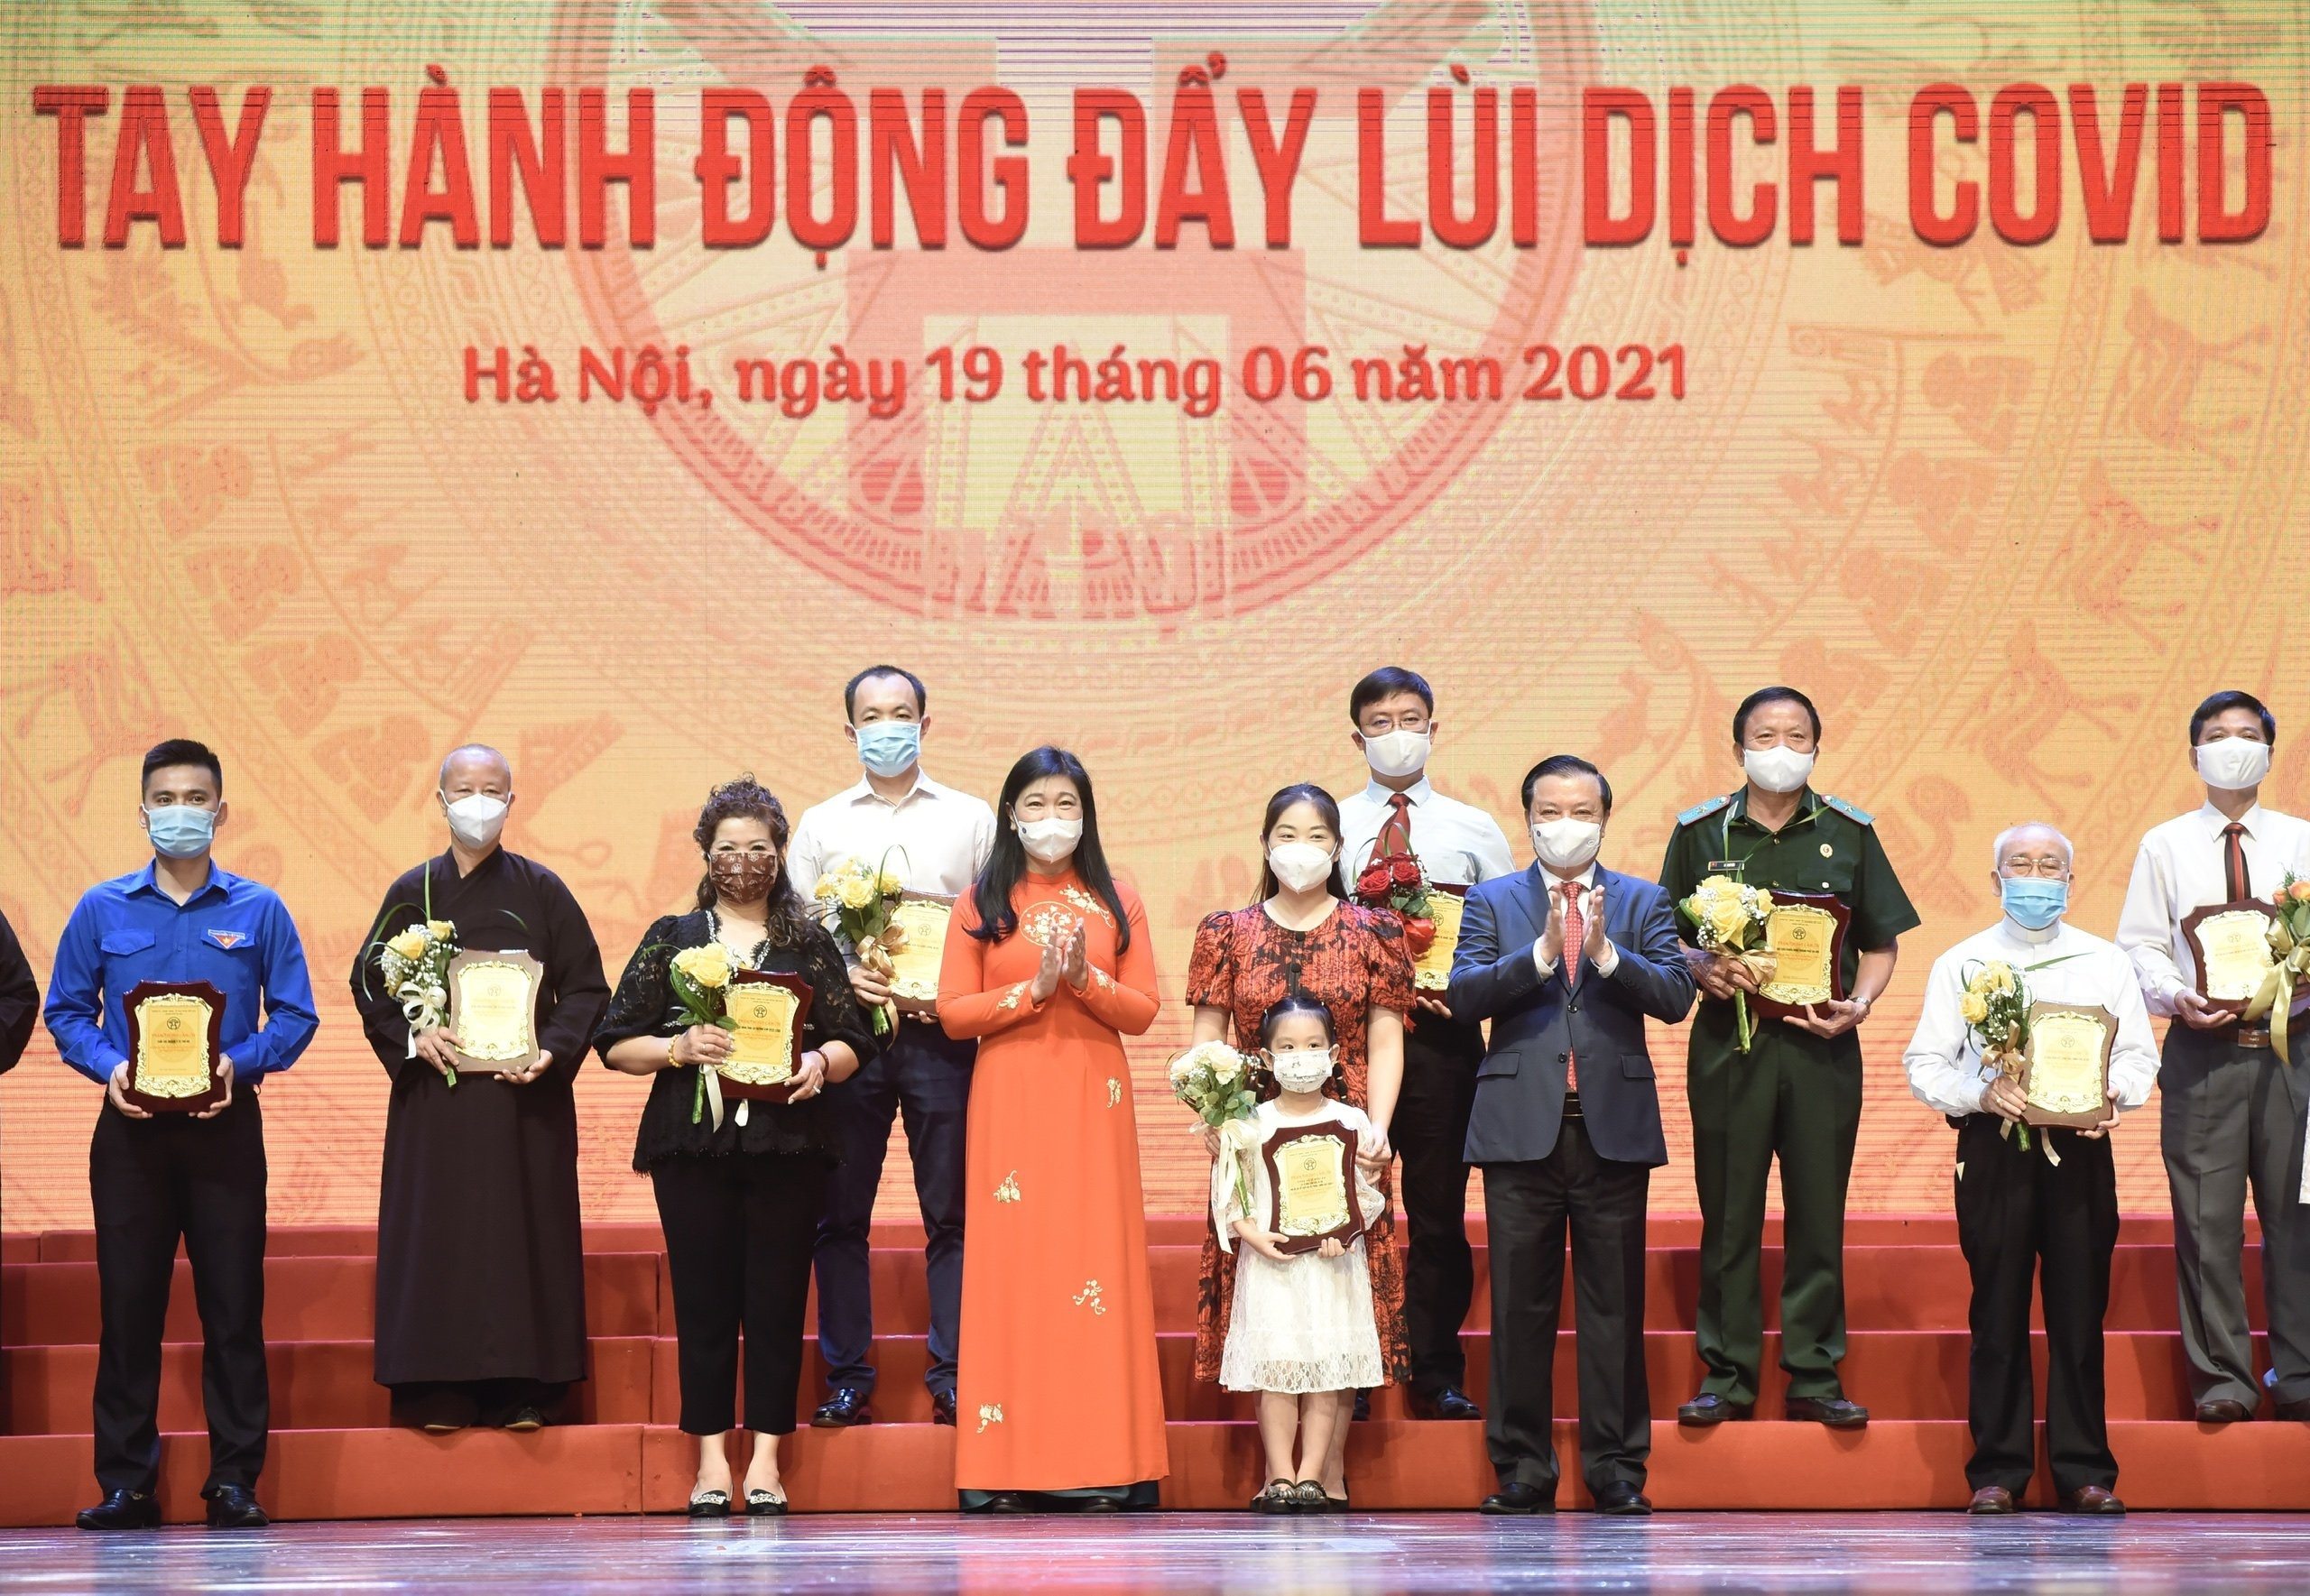 ha noi chung tay hanh dong day lui dich covid 19